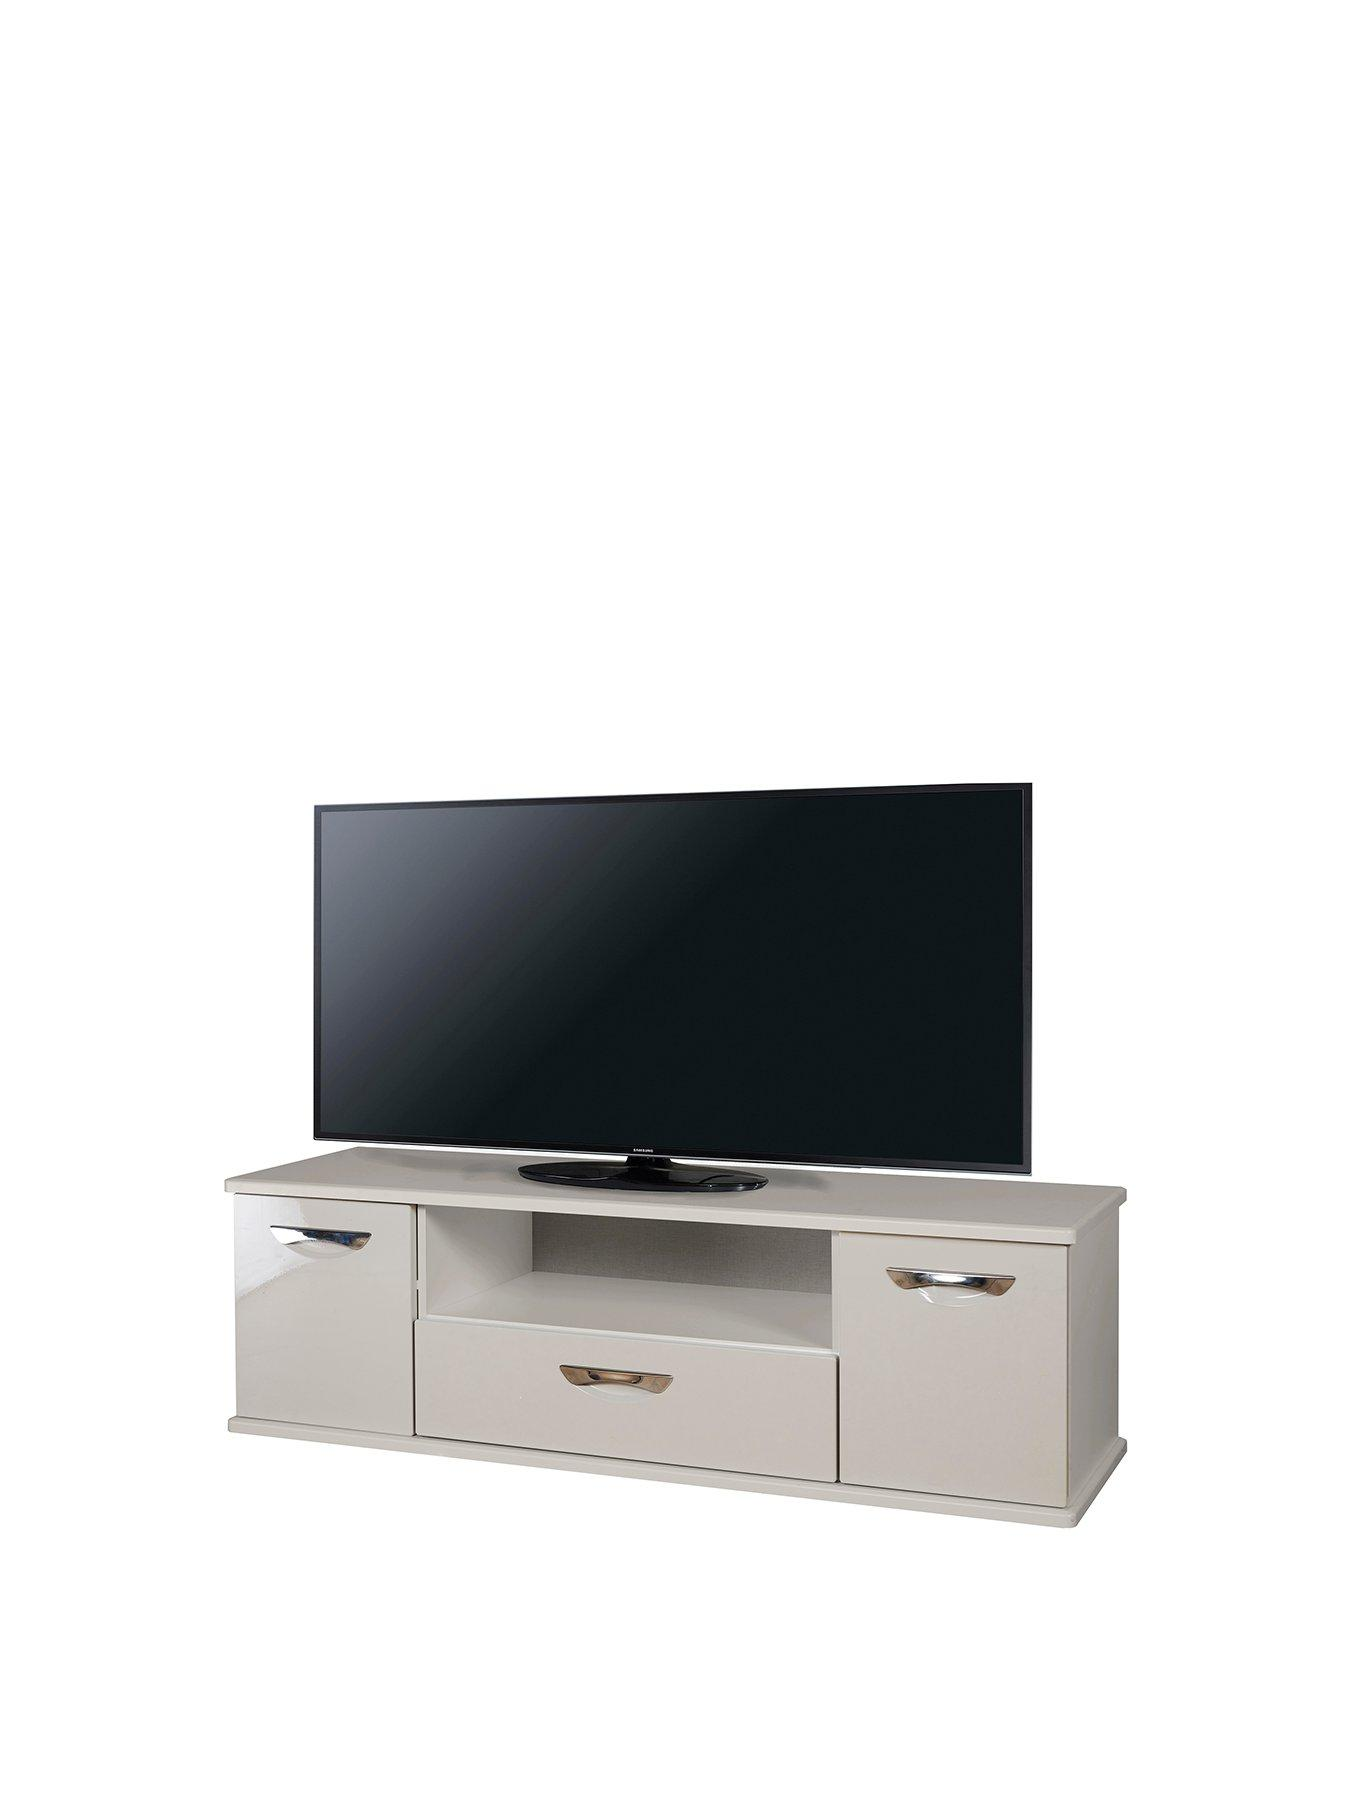 Picture of: Grey 2 Drawer Home Source Corner Tv Stand Open Shelf Oak Top Metal Handles Runners Home Kitchen Living Room Furniture